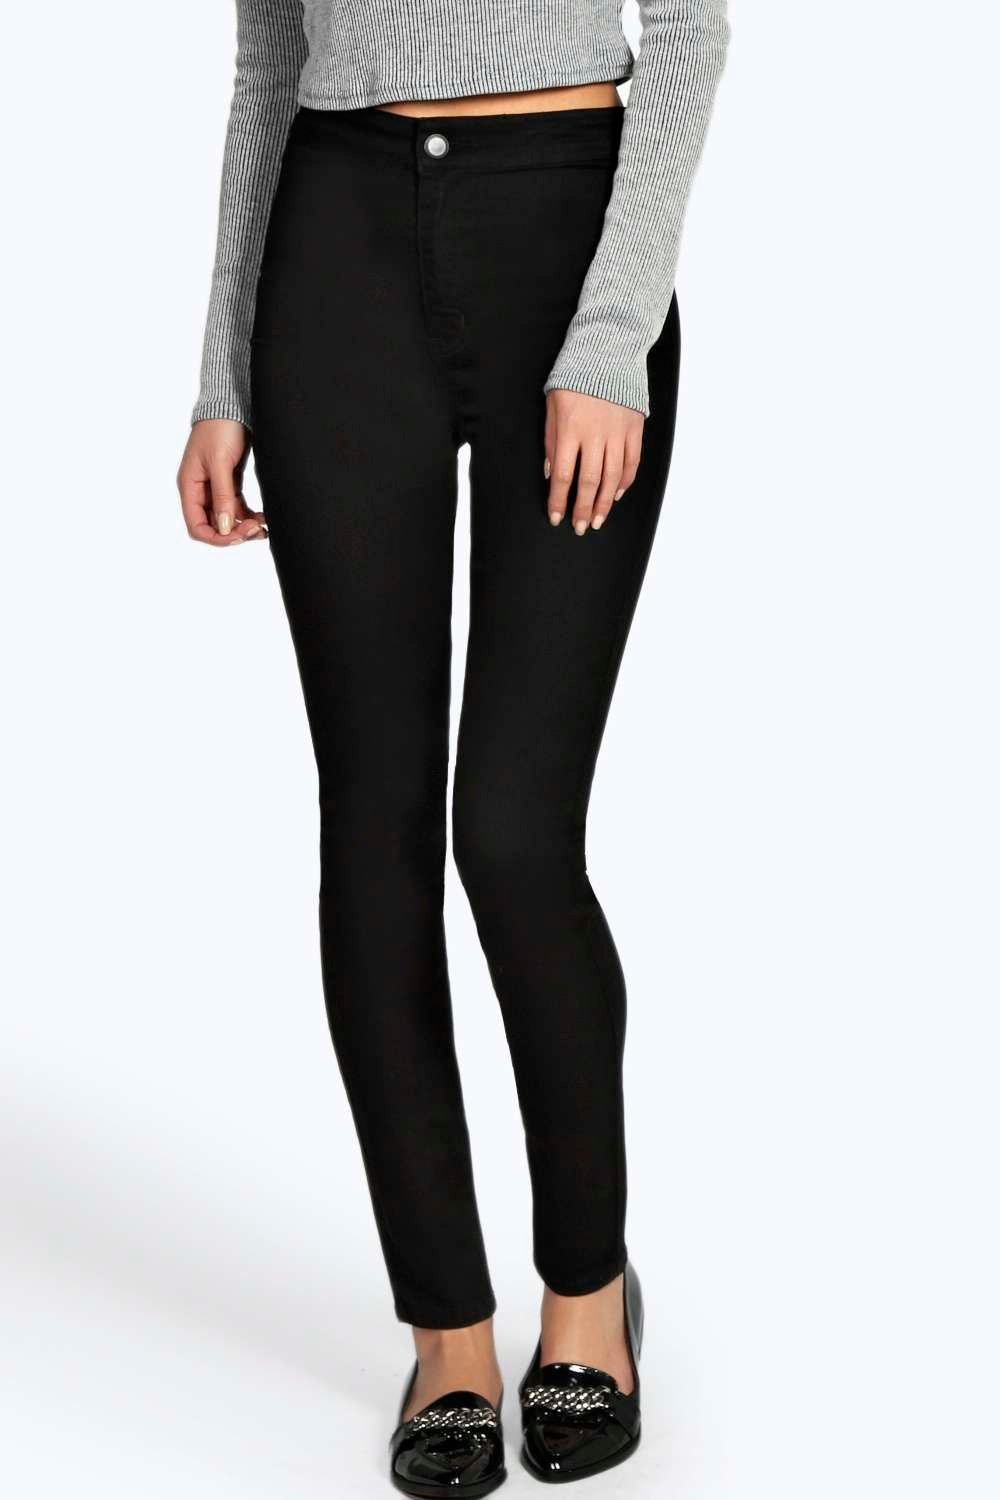 Discover high waisted and super high waisted jeans at ASOS. Shop from a range of skinny, ankle, ripped and flared high waisted jean styles from ASOS. ASOS DESIGN Maternity Ridley skinny jeans in clean black with over the bump waistband. £ ASOS DESIGN tall sculpt me high waisted premium jeans in clean black.